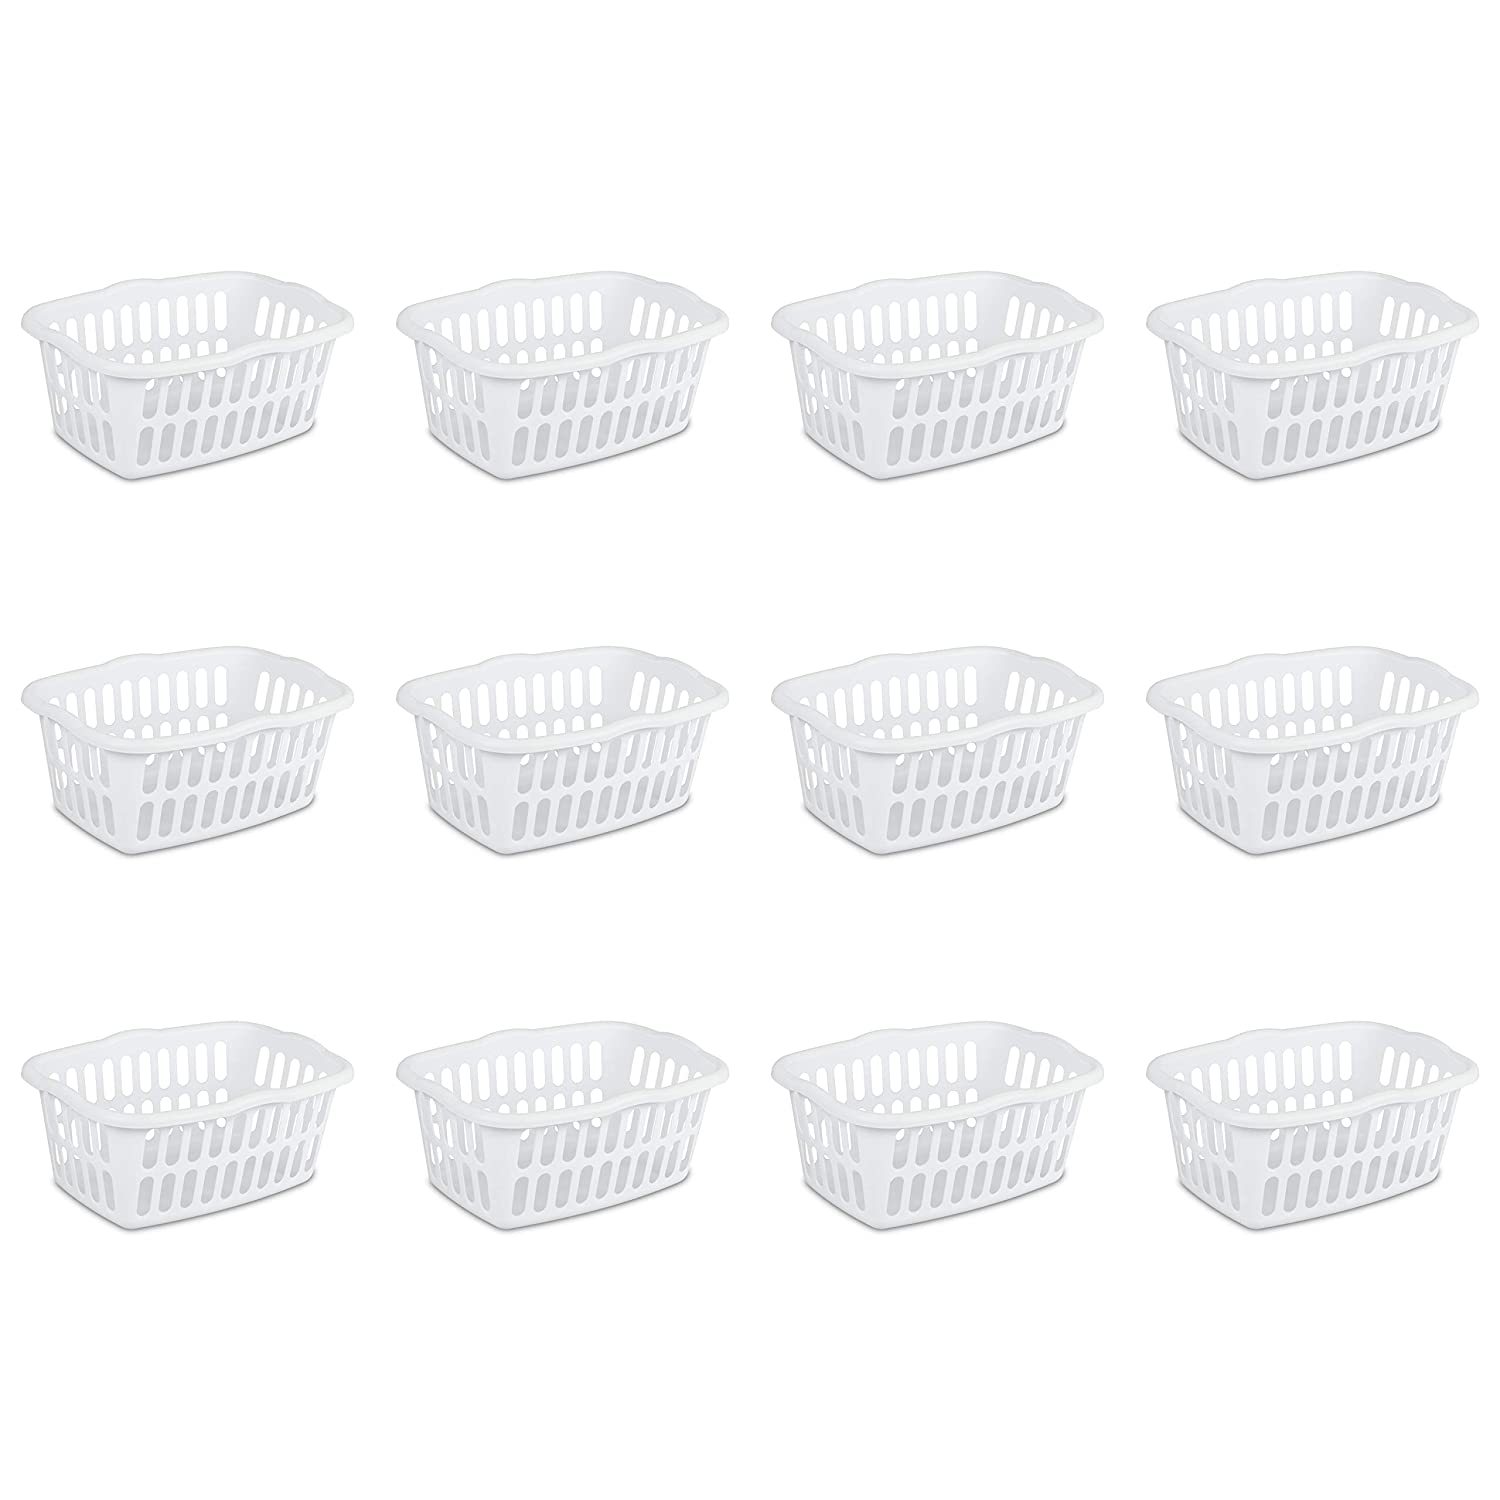 Sterilite 12458012 1.5 Bushel/53 Liter Rectangular Laundry Basket, White, 12-Pack